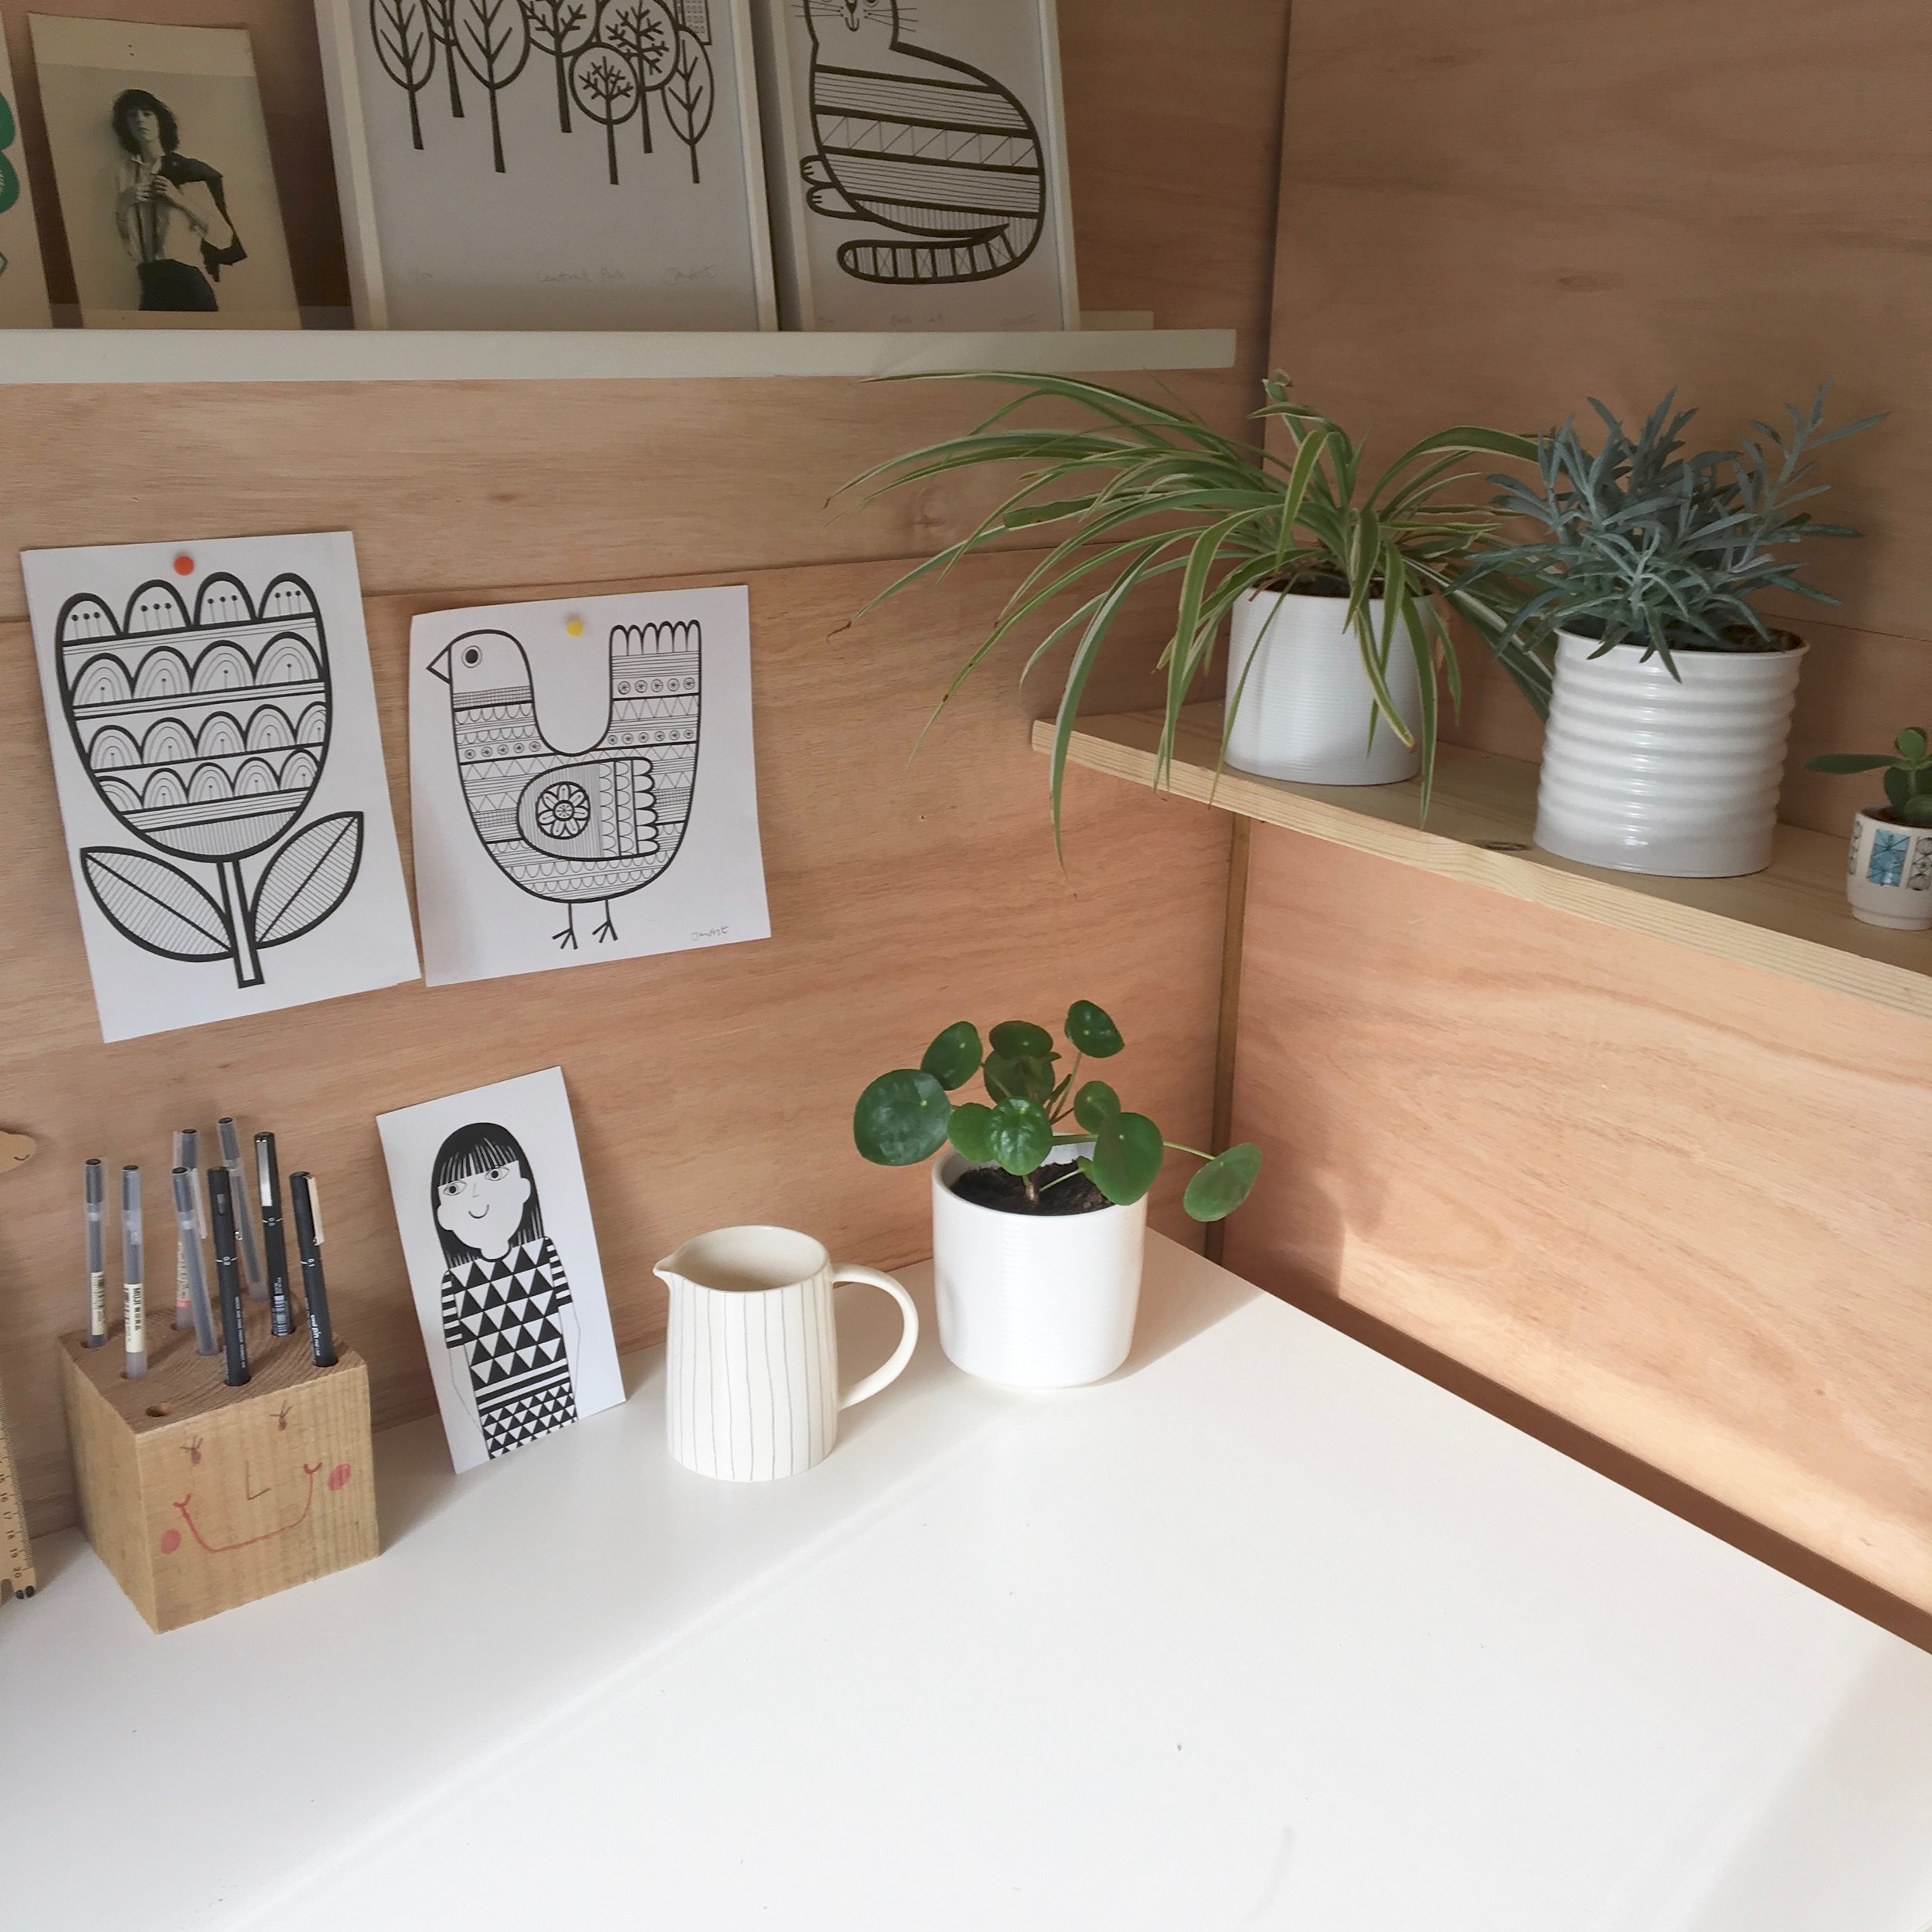 Some of my illustrations, my favourite pen holder made by my daughter and some plants. The striped jug is made by Rachel Barker.